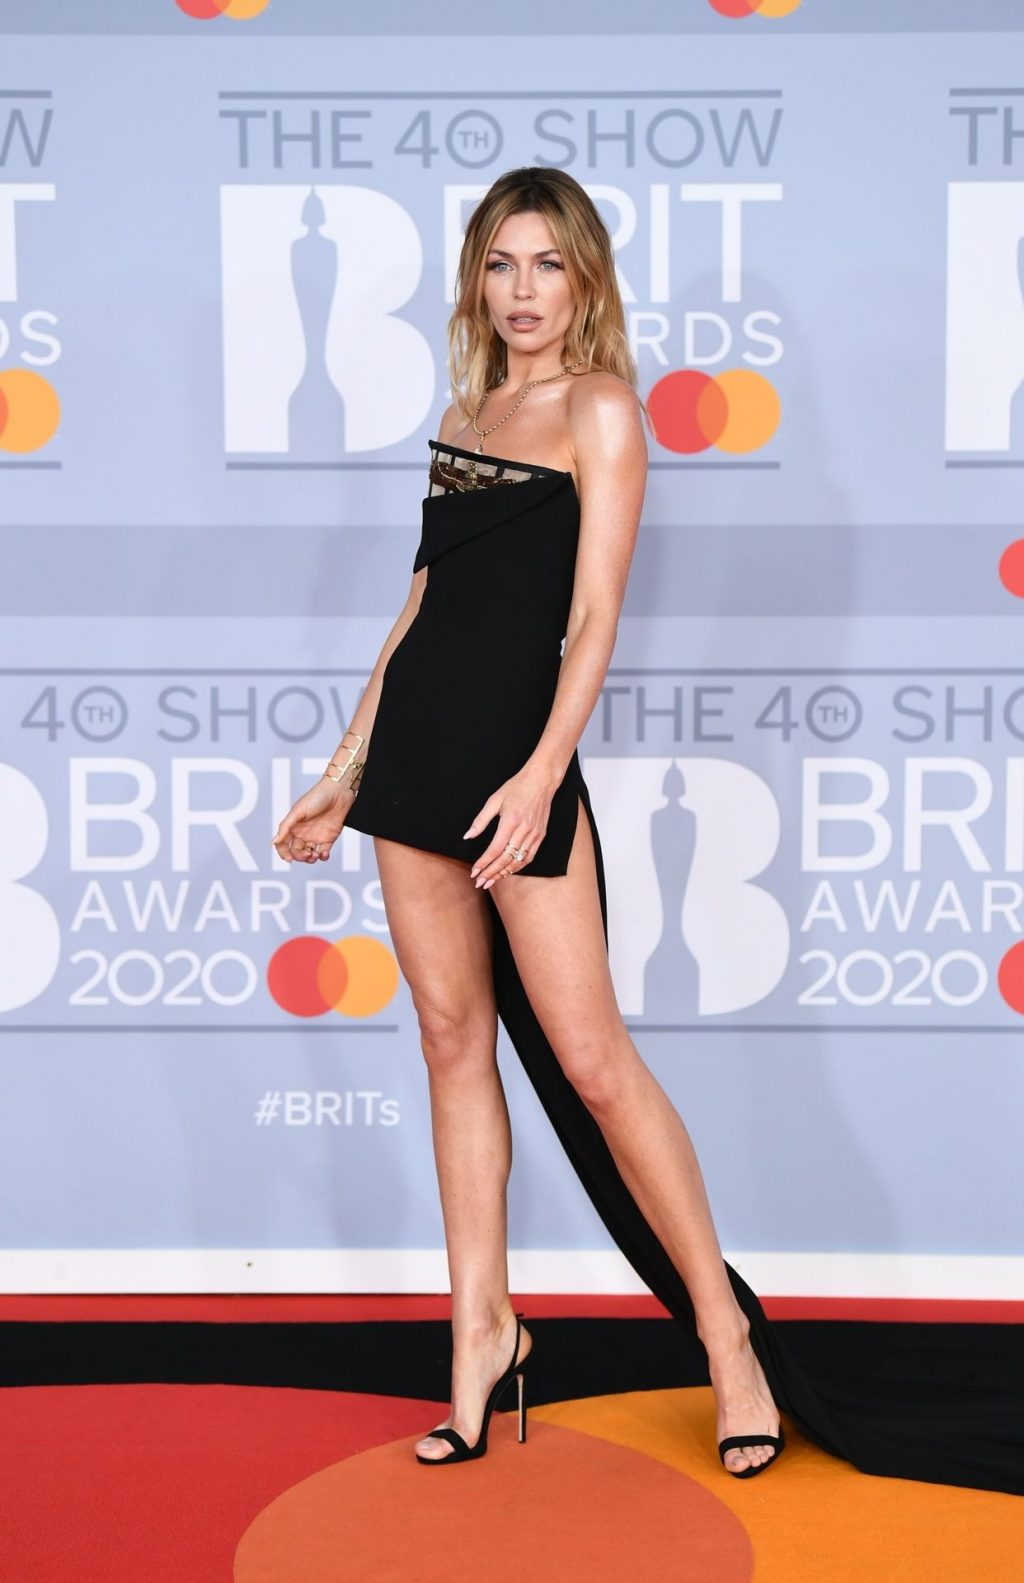 Abbey Clancy Shows Her Sexy Legs at The 40th Brit Awards (27 Photos)